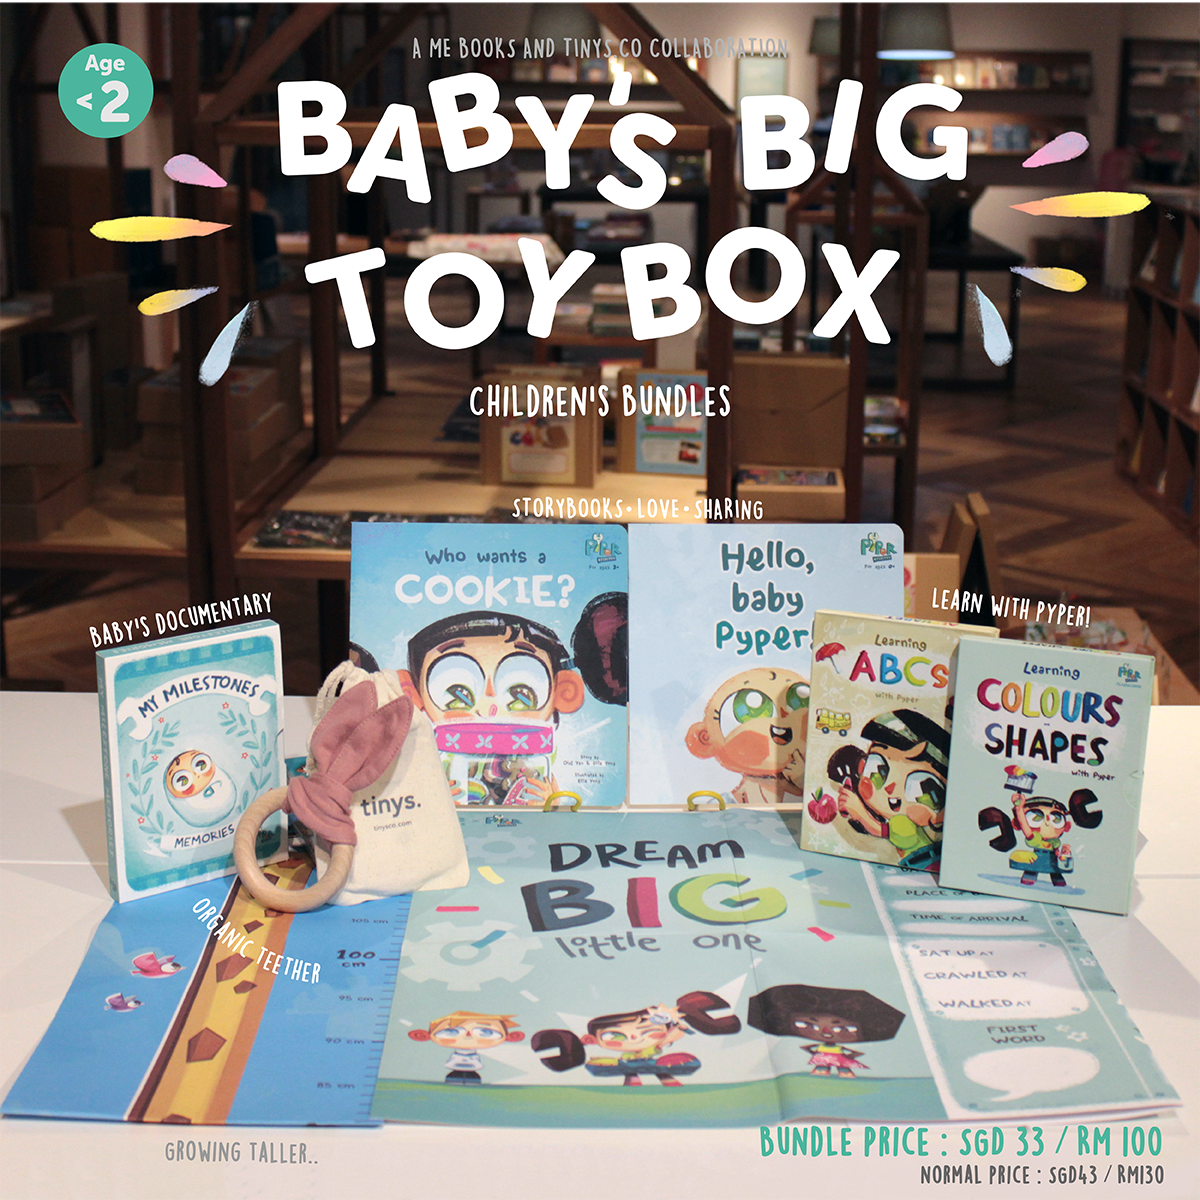 Baby's Big ToyBox Children's Bundle